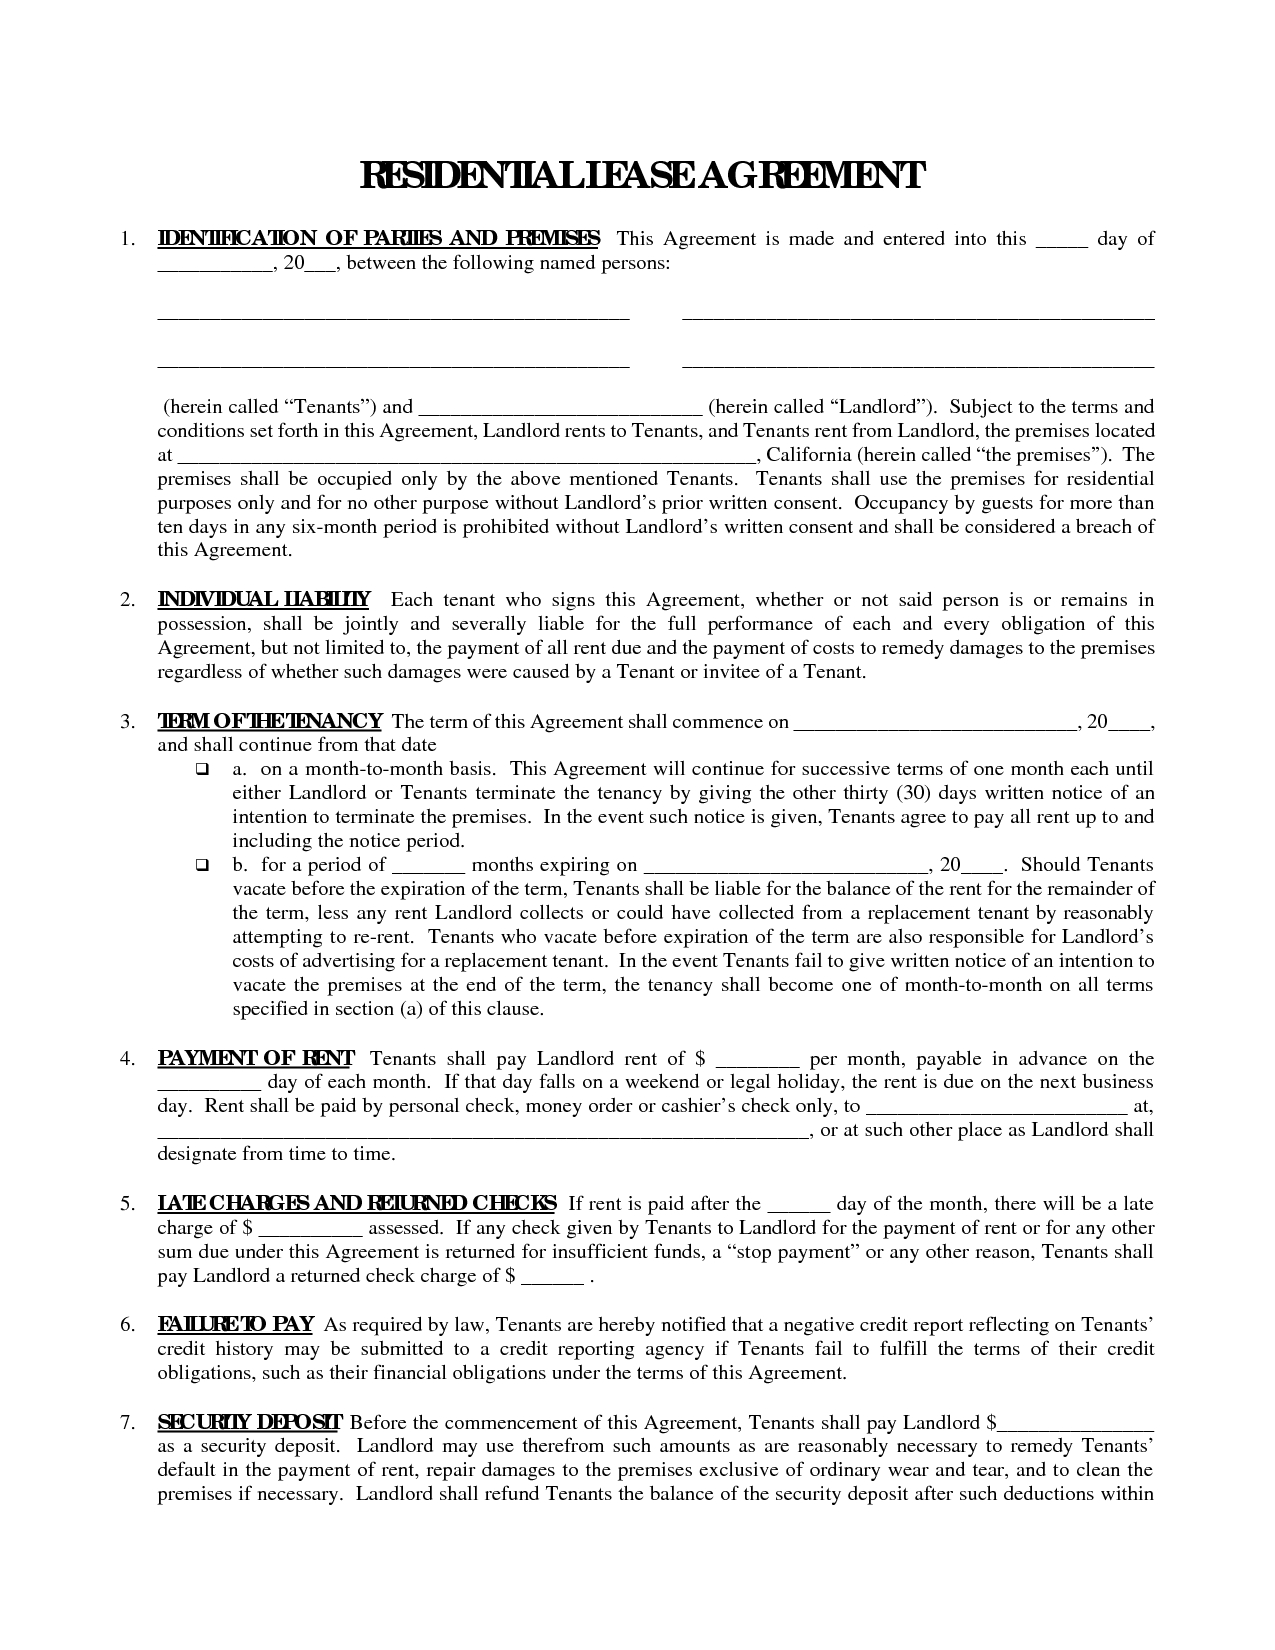 Printable Residential Free House Lease Agreement | Residential Lease - Free Printable Real Estate Contracts